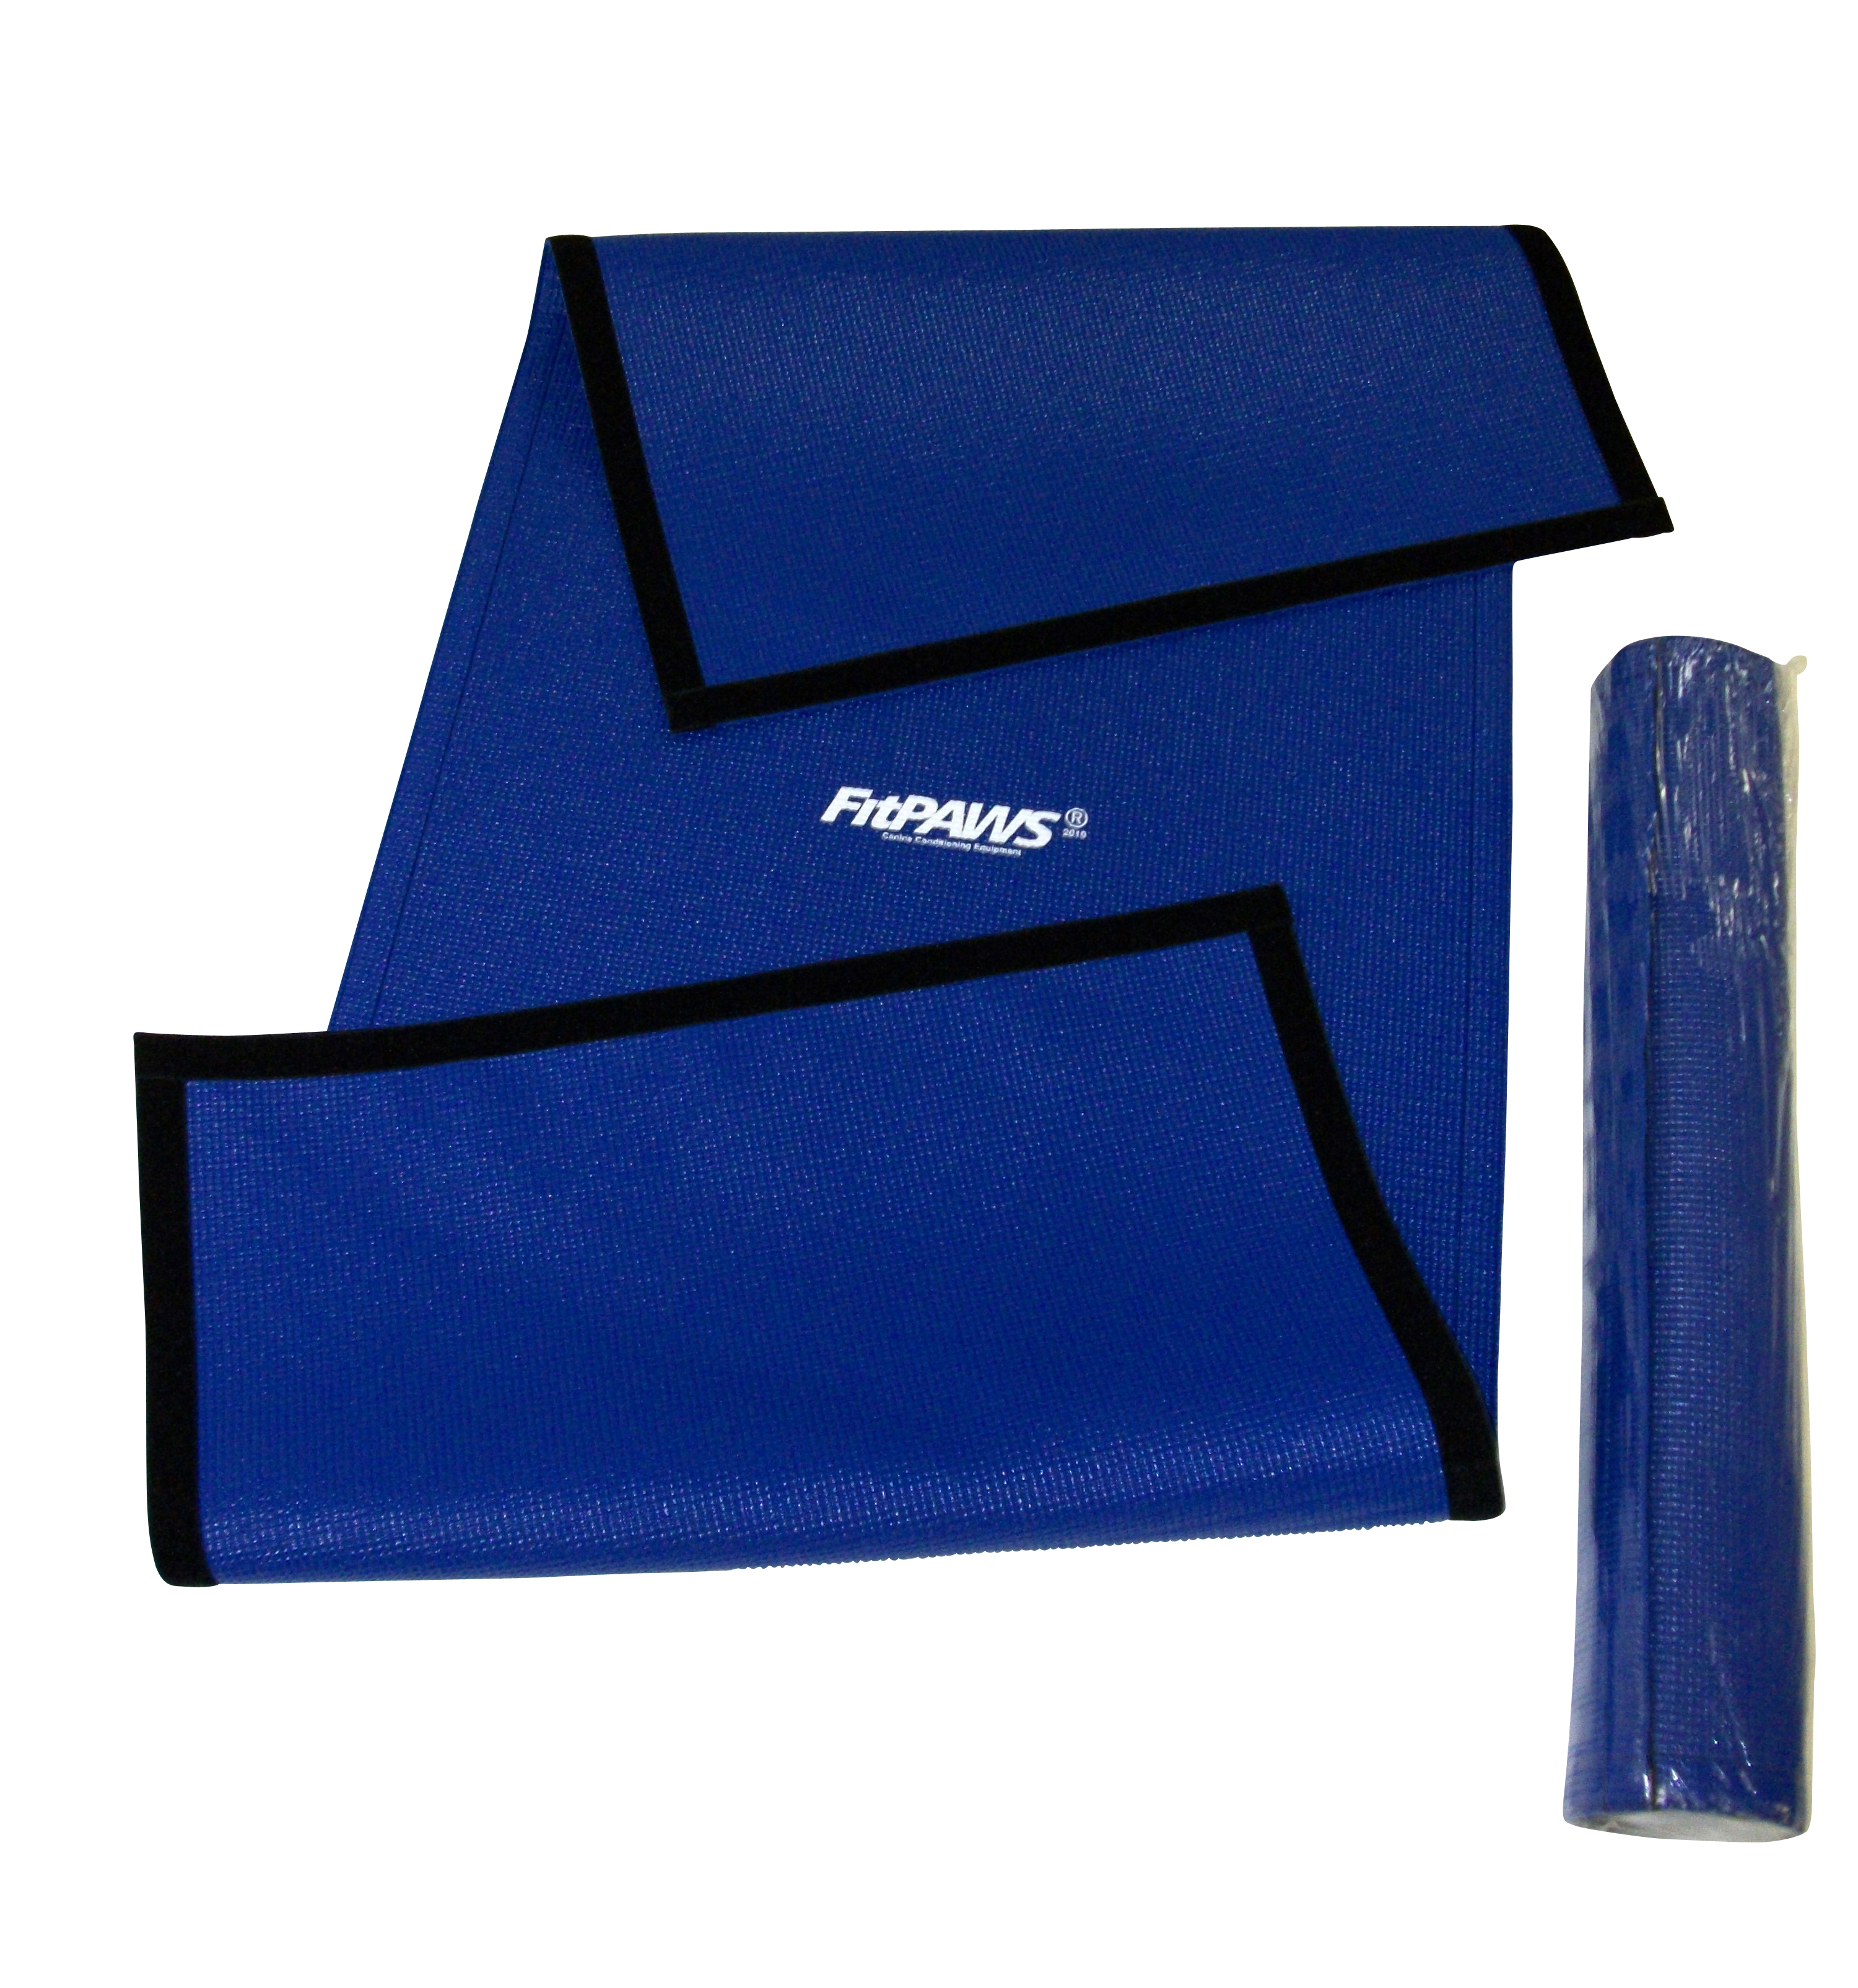 KRUUSE Rehab FitPAWS Replacement Mat for Rocker Board